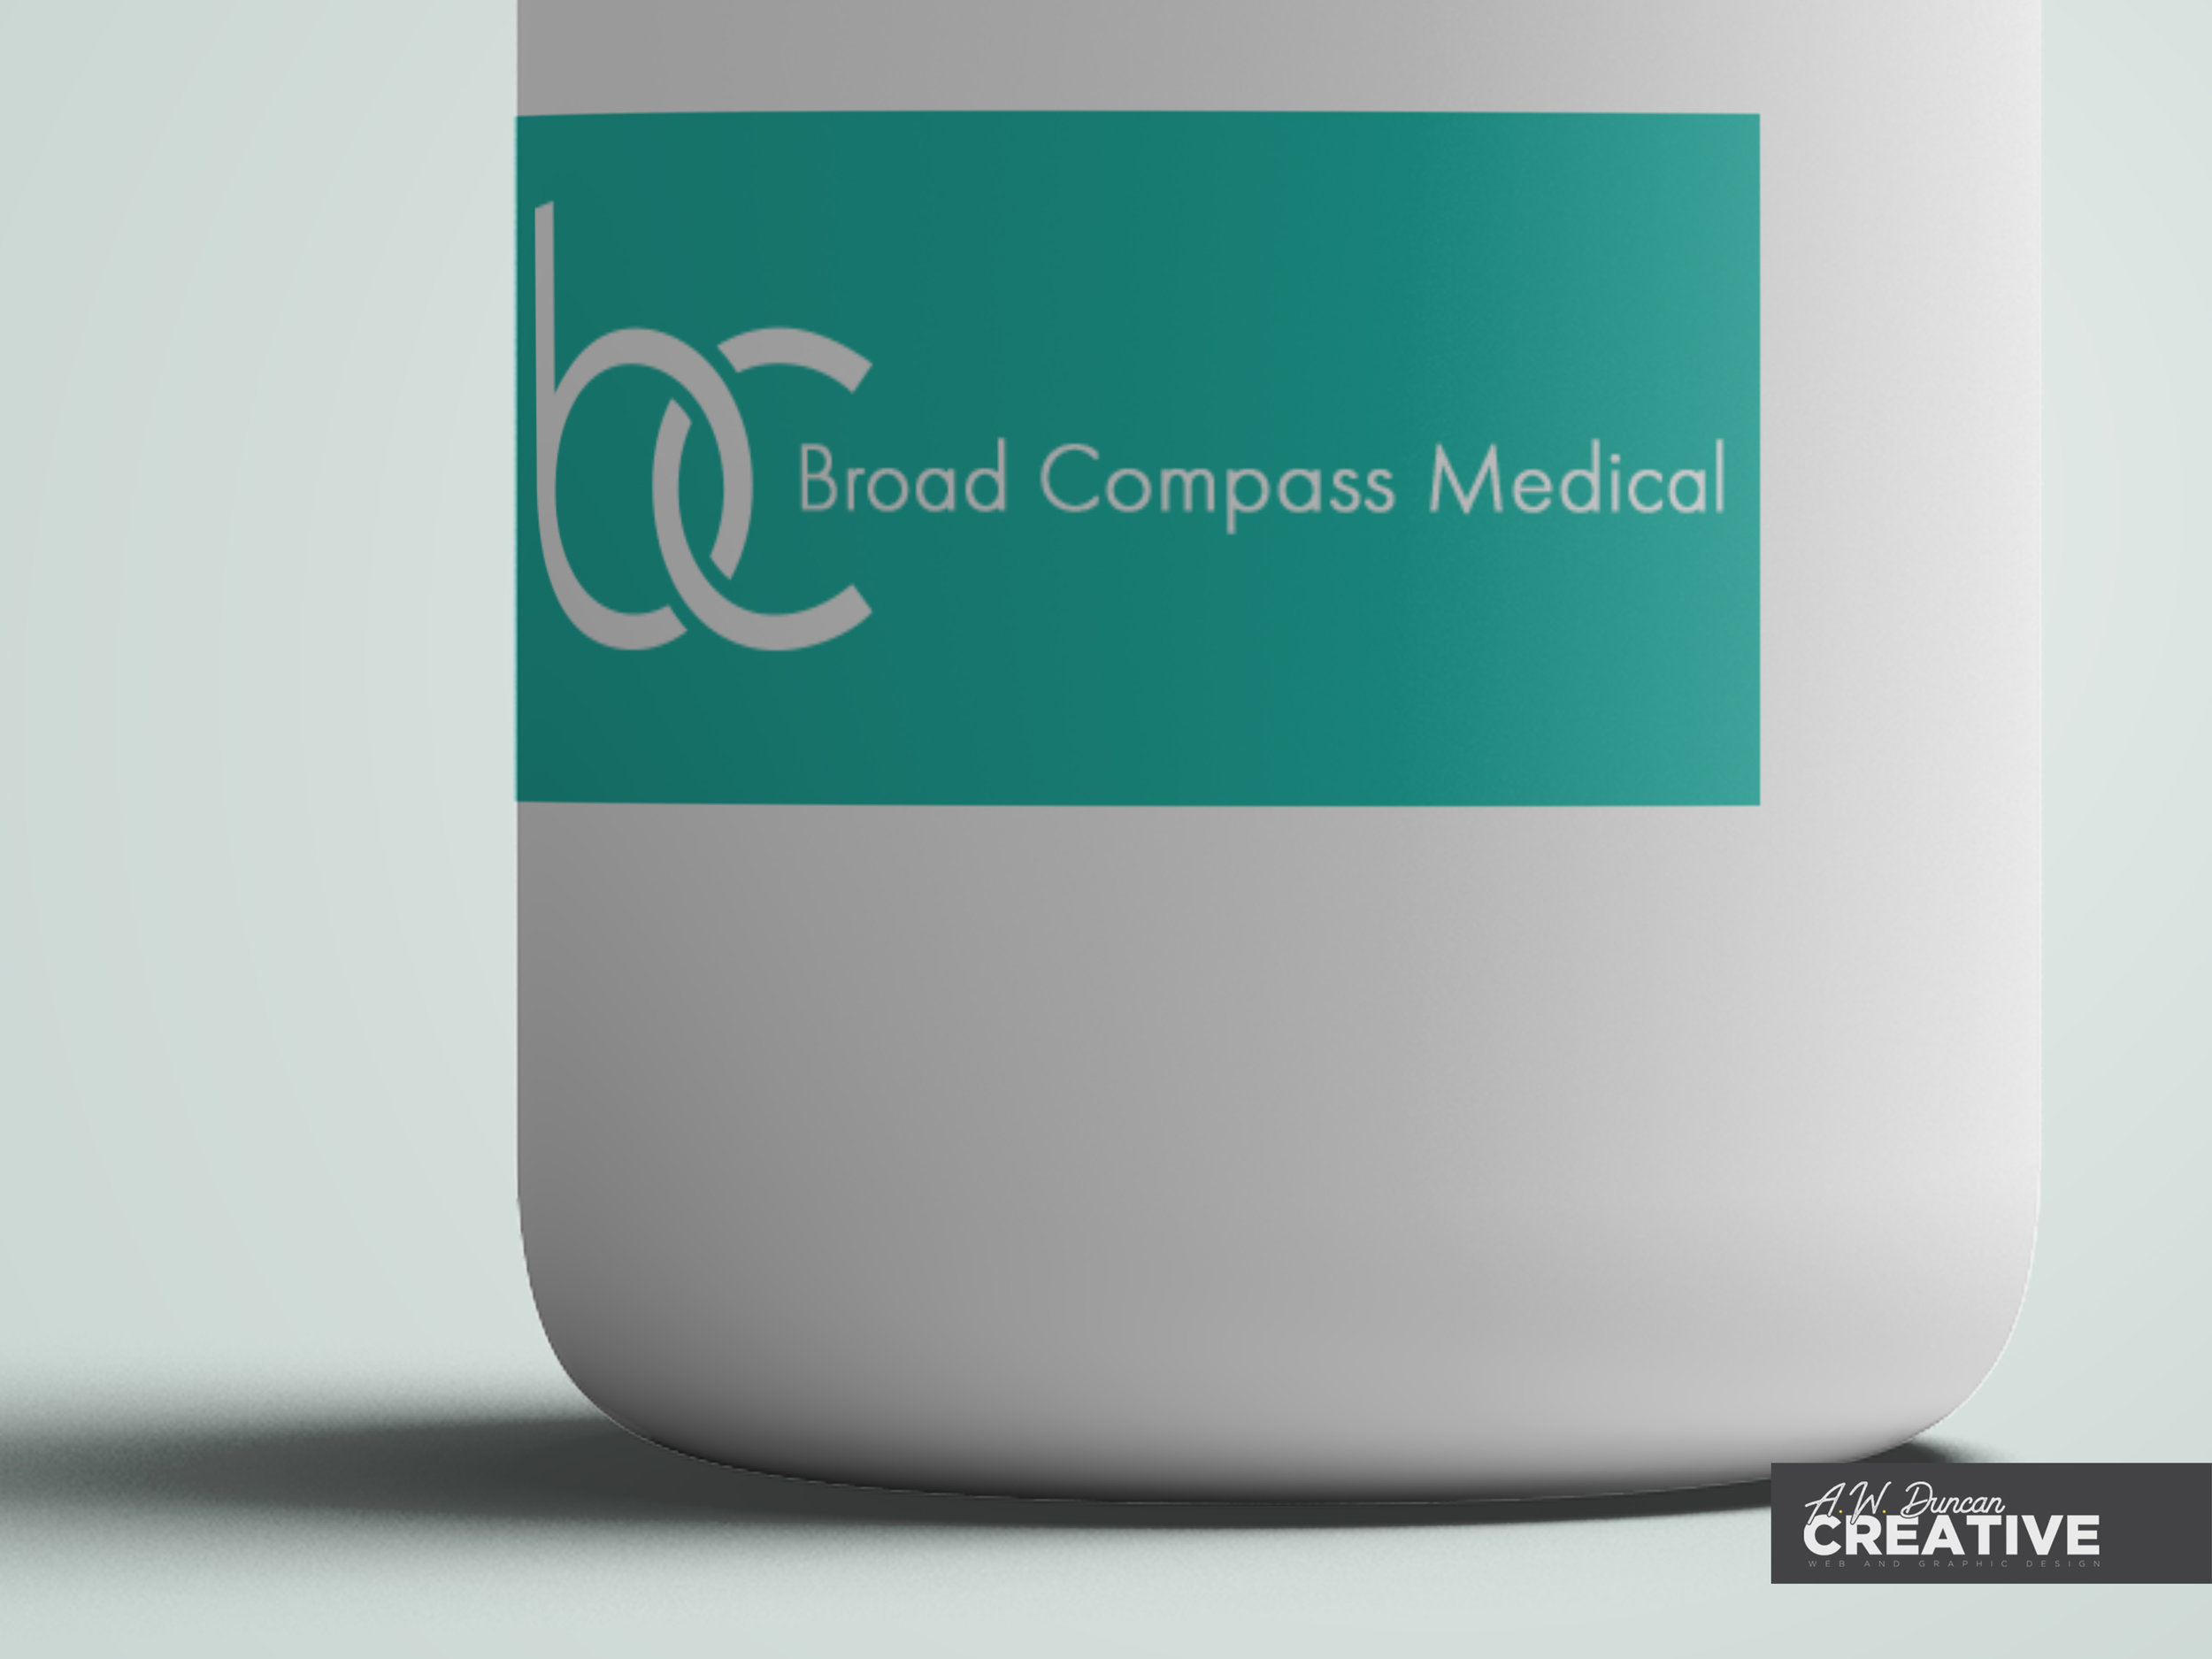 Broad Compass Medical 2